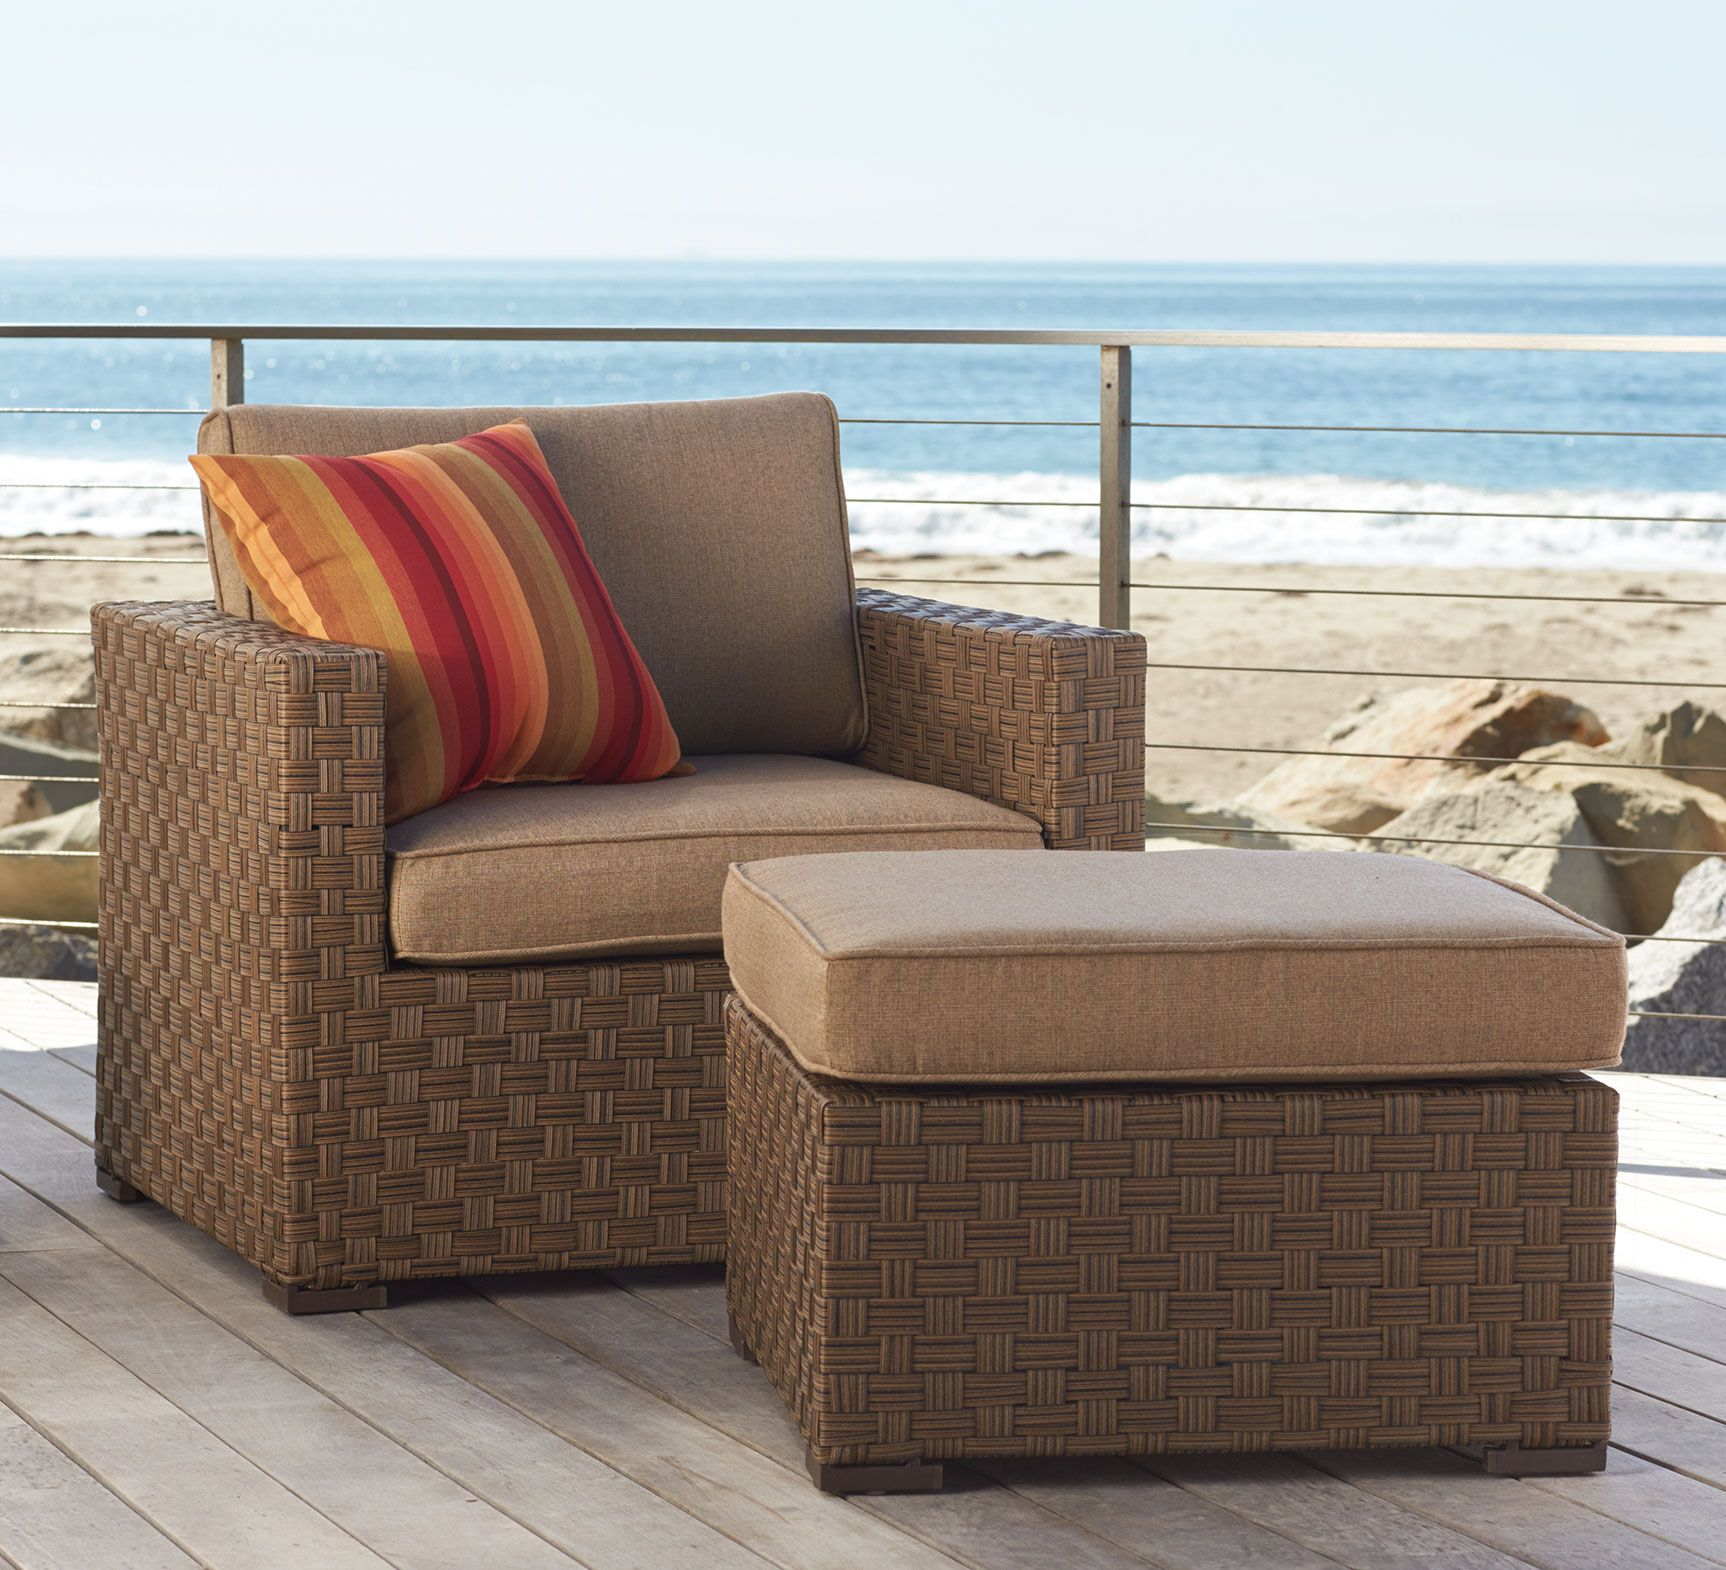 You Donu0027t Need To Live At The Beach To Enjoy Seaside Luxury. The Attractive  All Weather Wicker Barcelona Sectional And Tables Sold @ Orchard Supply.